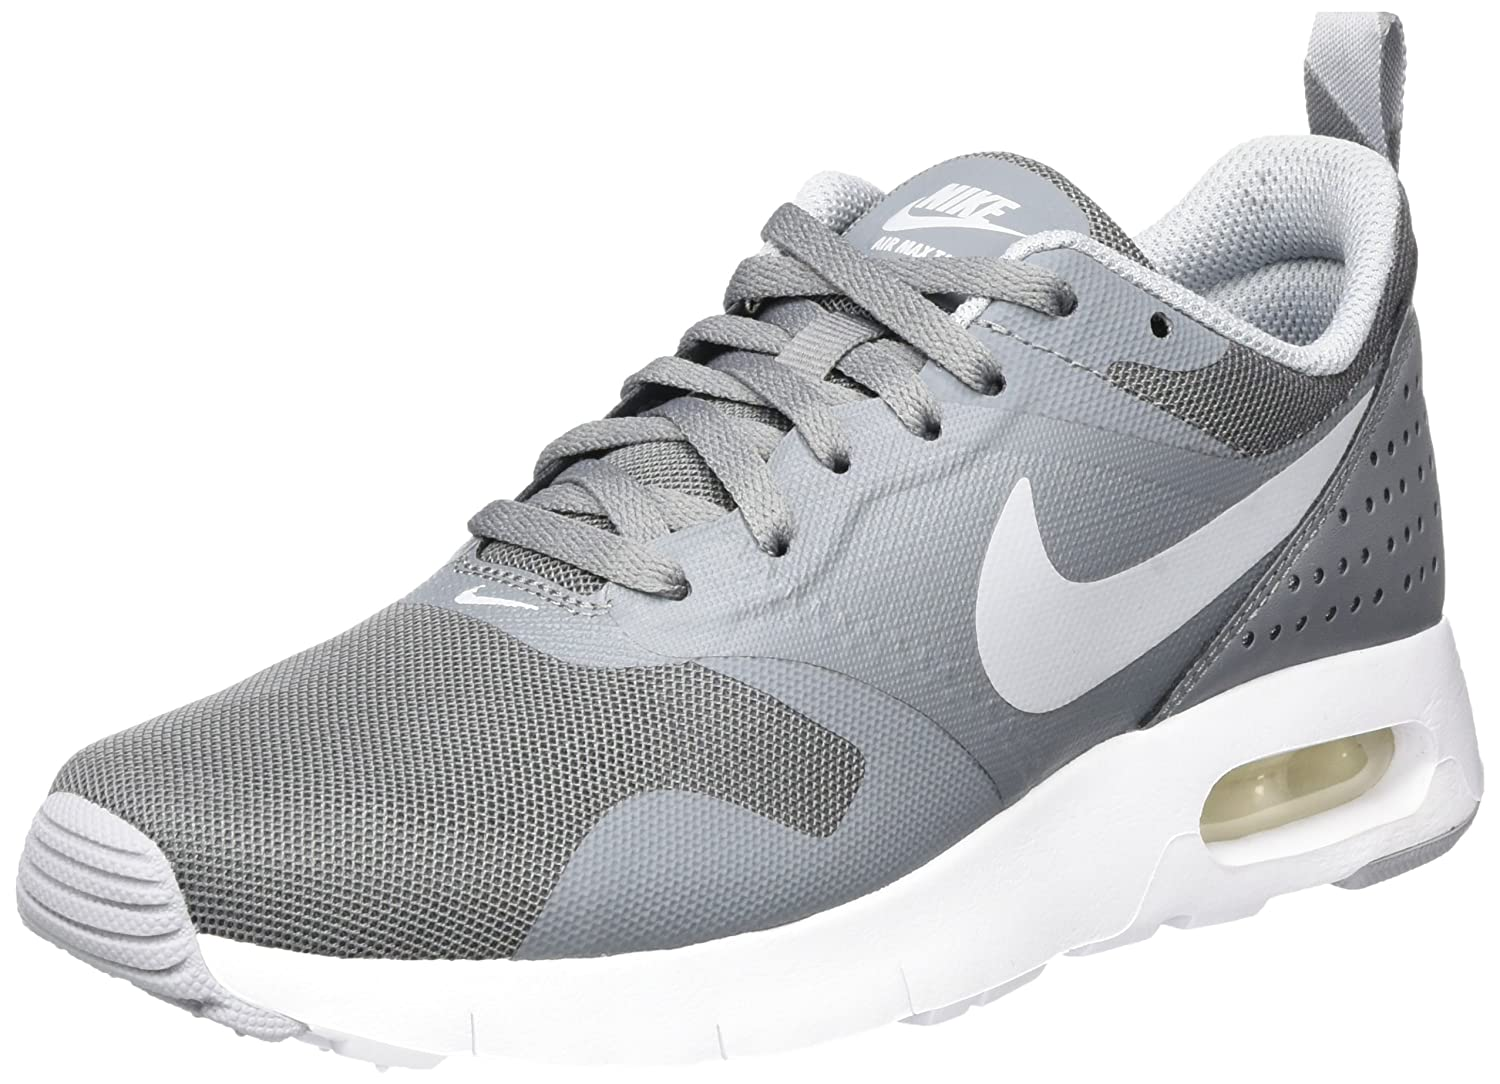 reputable site eb10a 0a137 Amazon.com   Nike Youths Air Max Tavas Mesh Trainers   Running